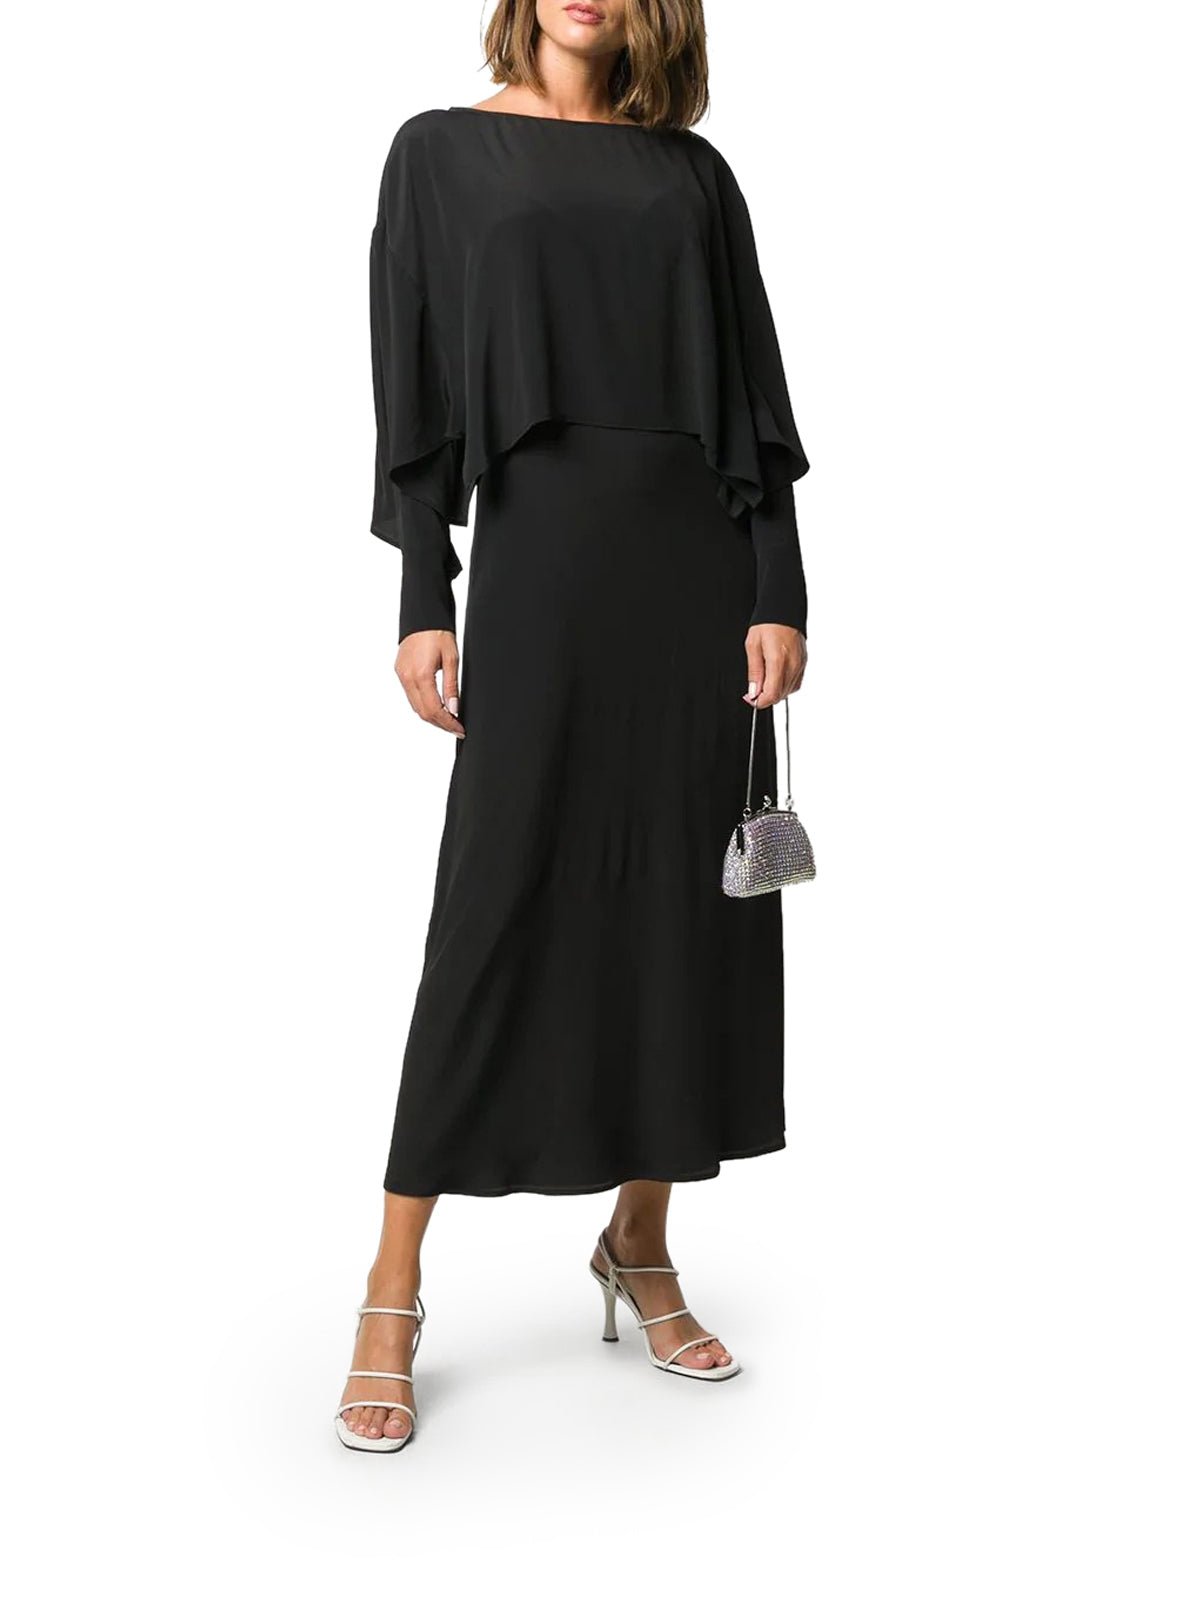 layered-look maxi dress